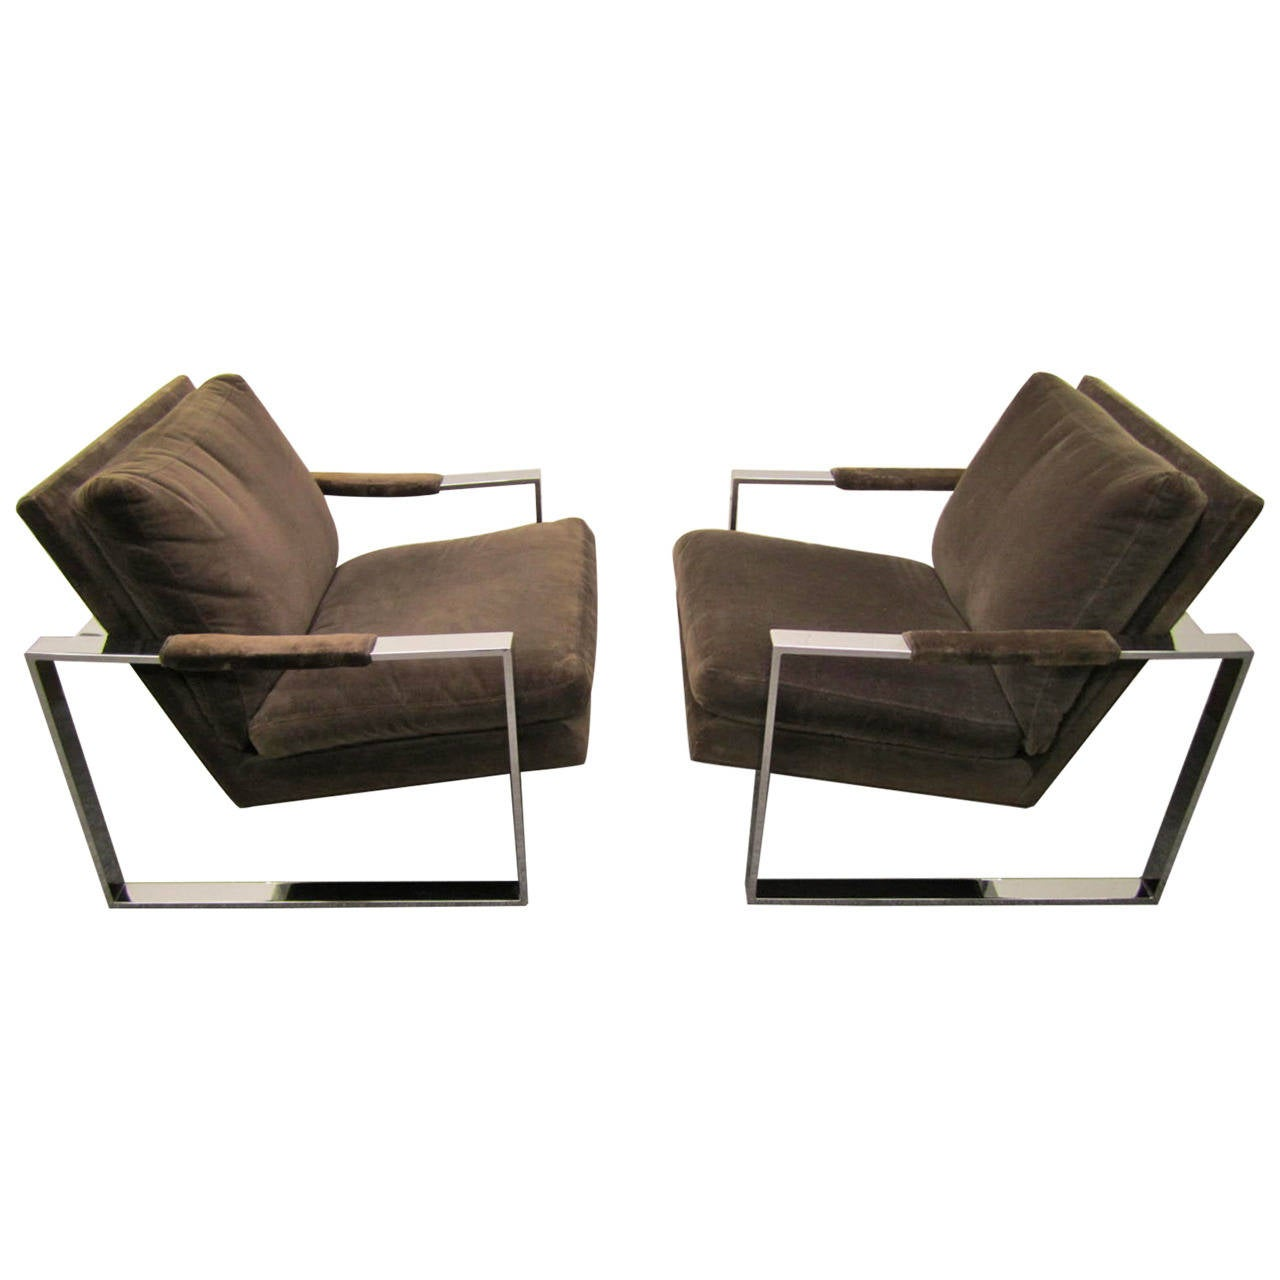 Fabulous Pair of Milo Baughman Chrome Cube Lounge Chairs, Mid-Century Modern For Sale